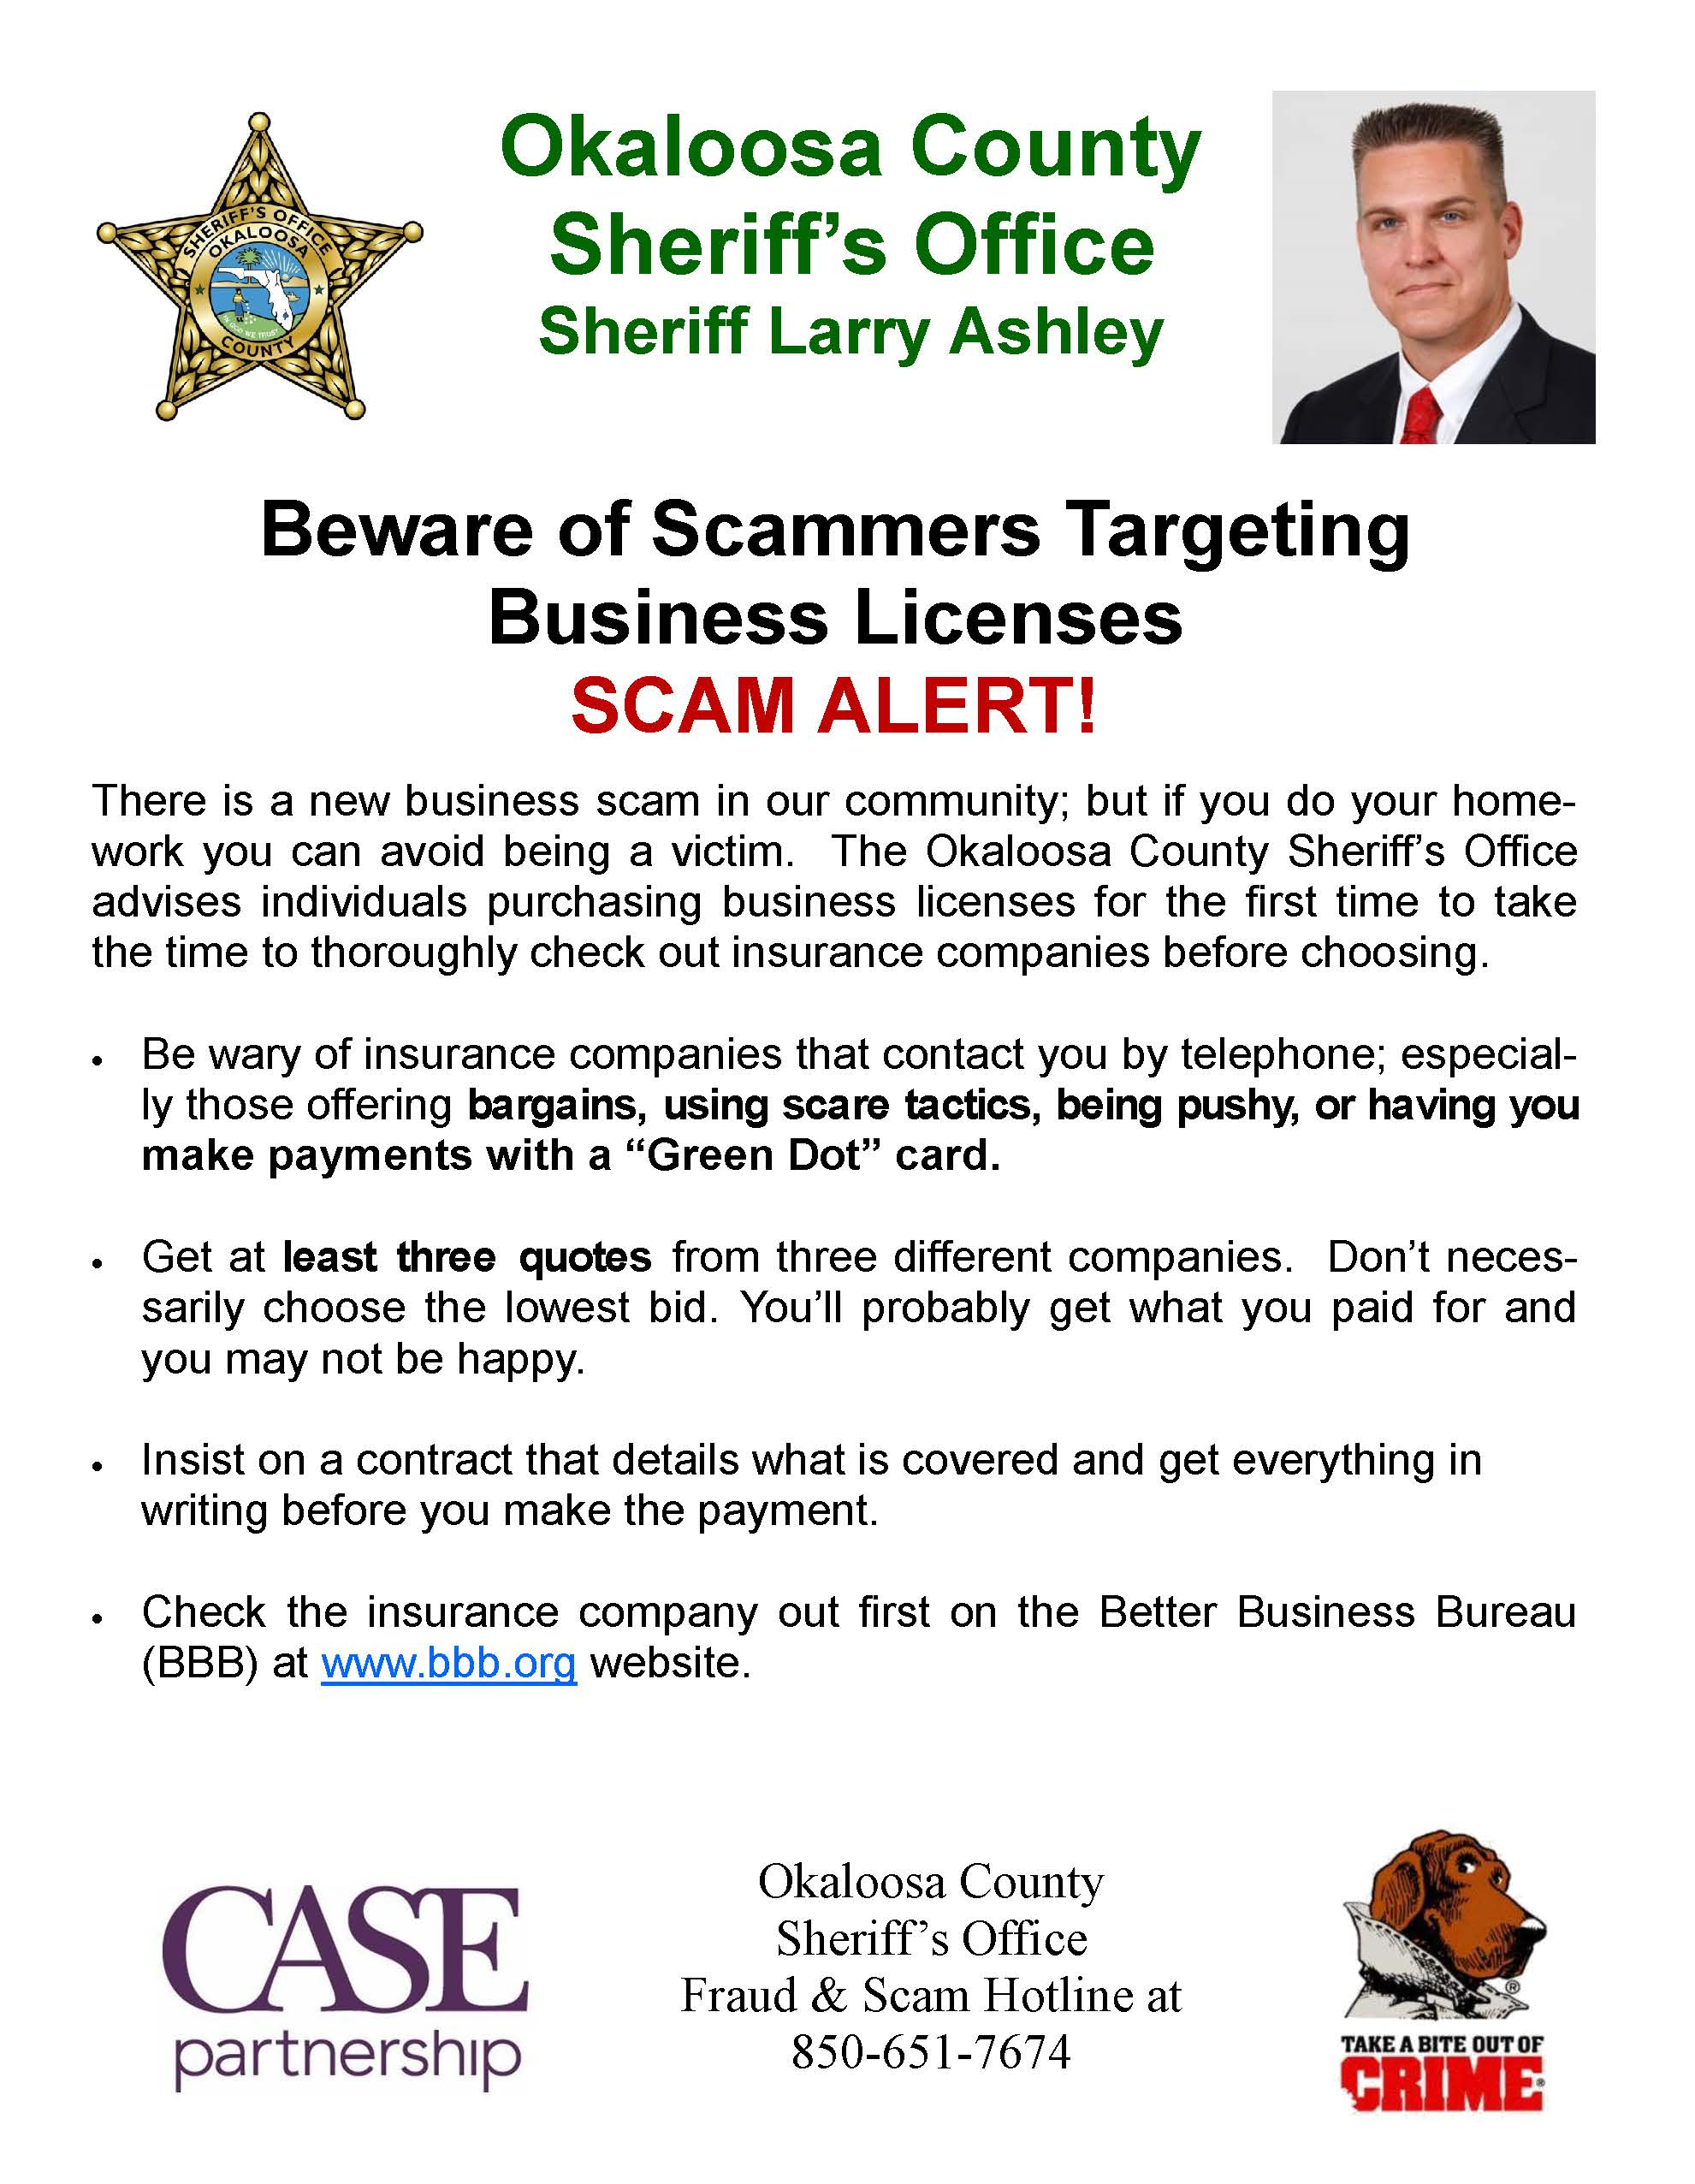 Beware of Scammers Targeting Business Licenses graphic